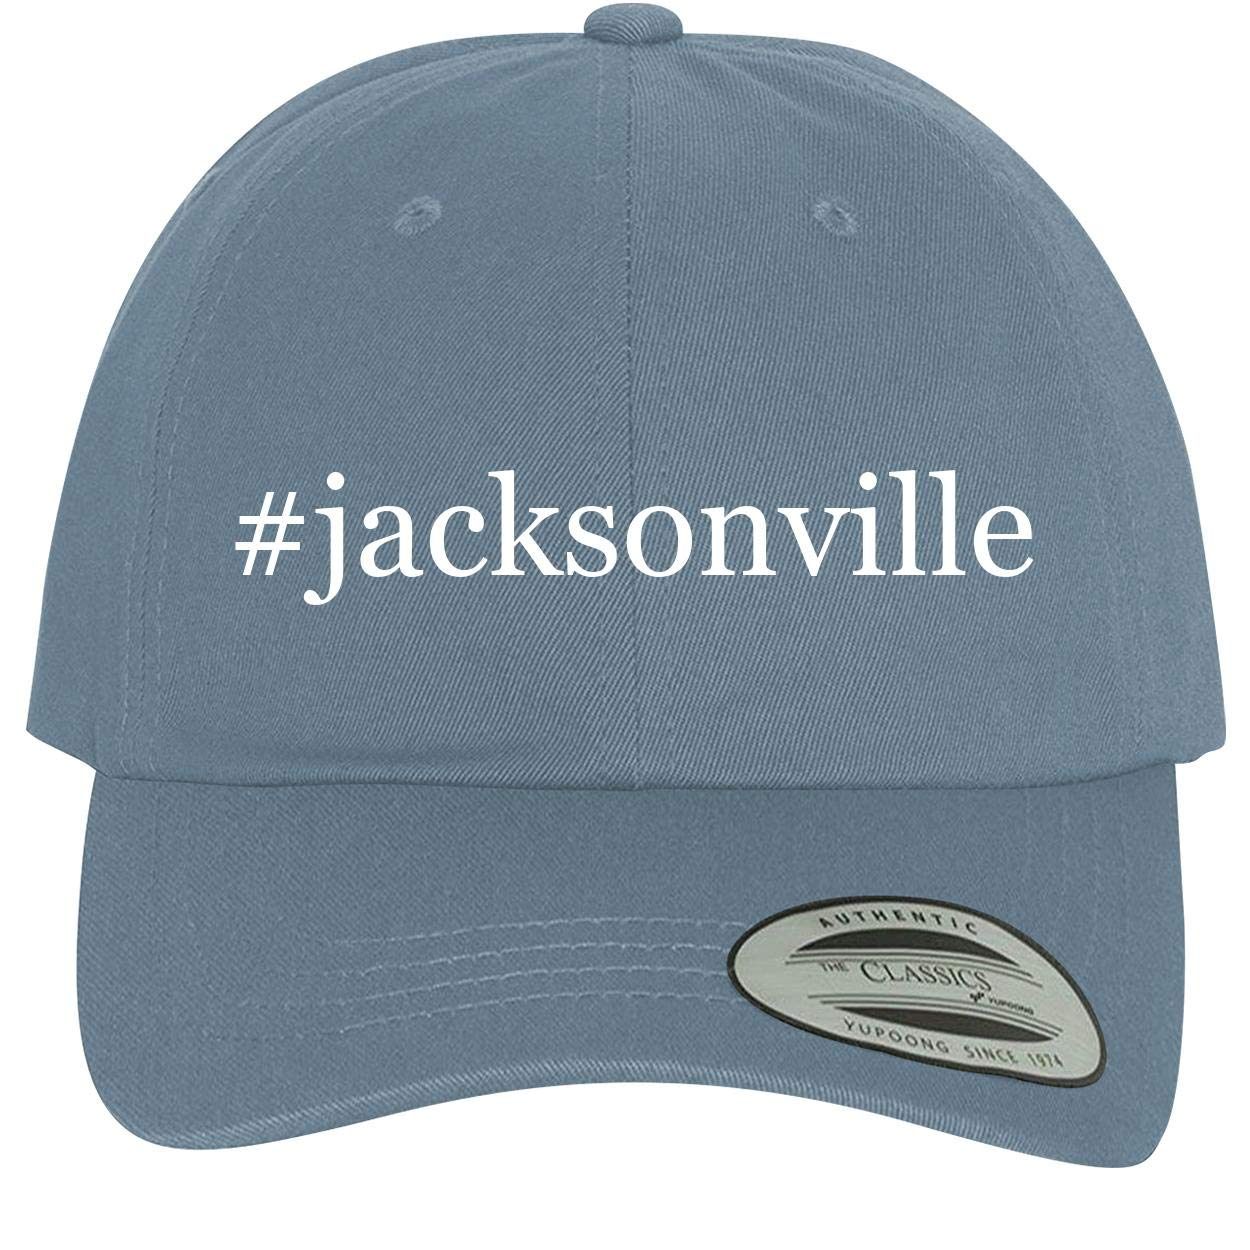 Comfortable Dad Hat Baseball Cap BH Cool Designs #Jacksonville